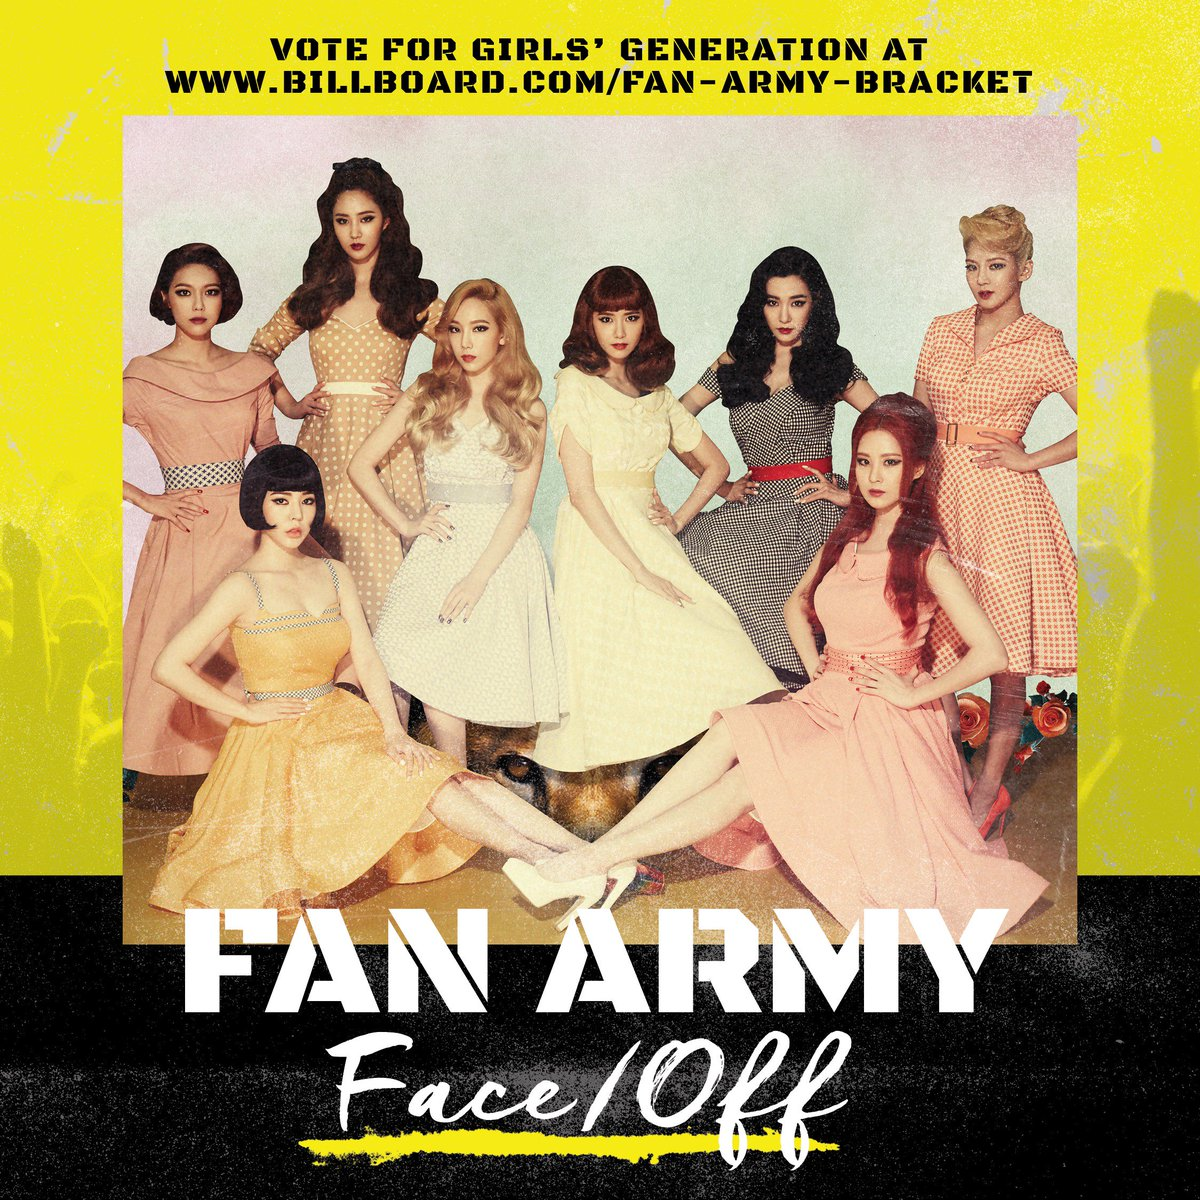 Show your favorite some love in the #FanArmyFaceOff! Vote here: https://t.co/FRh46LTgPX